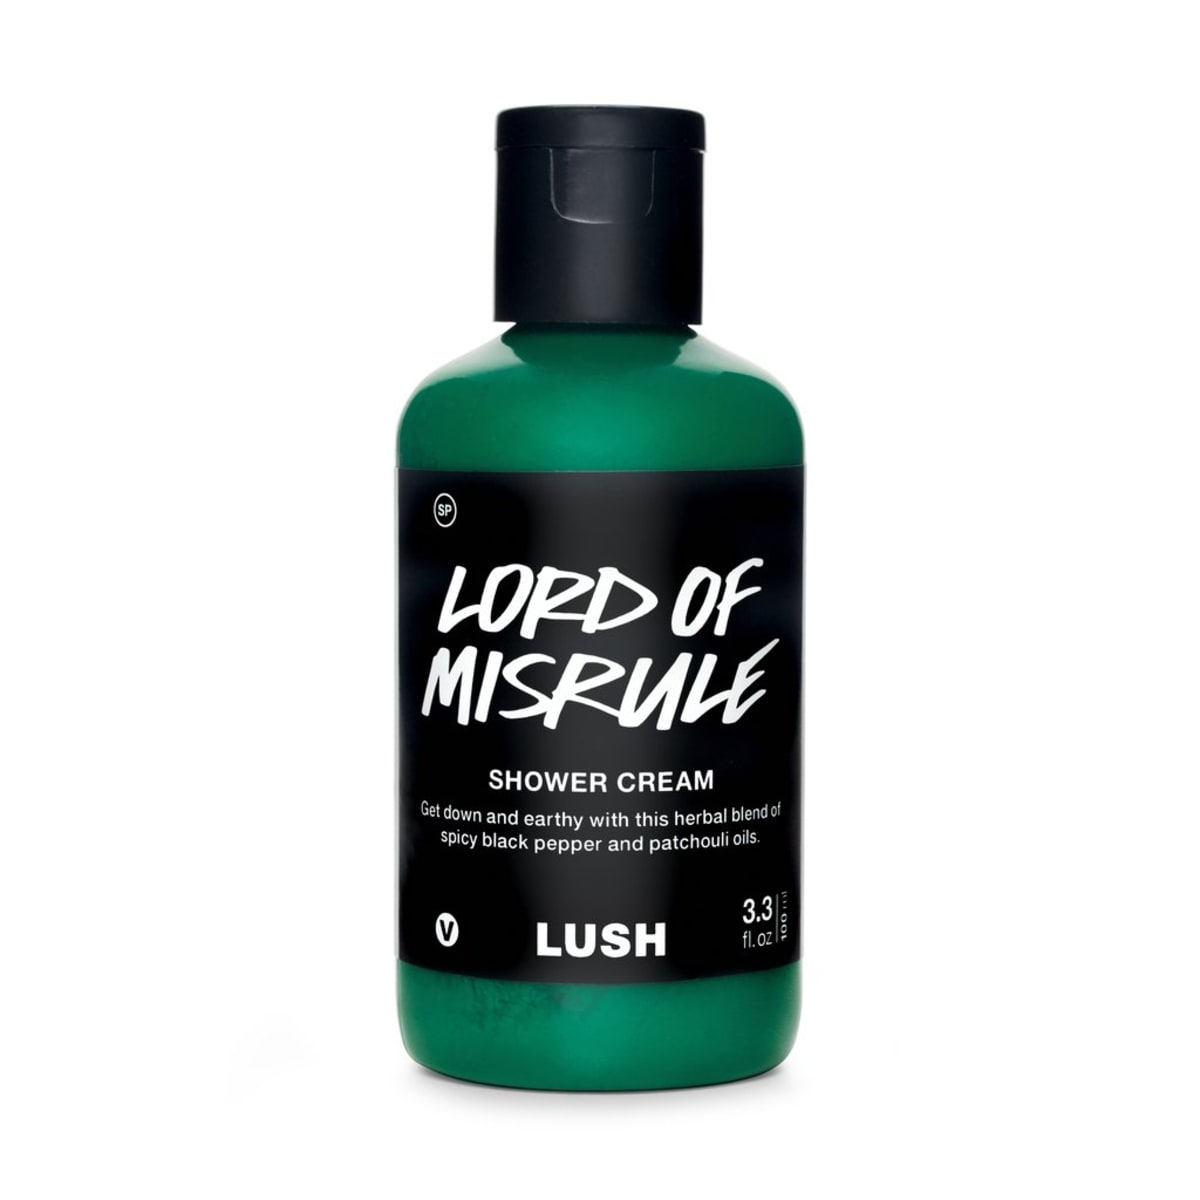 lush-lord-misrule-shower-cream-5ef35de4-fa1b-410a-9d91-a7bdadd4dfb7.jpg